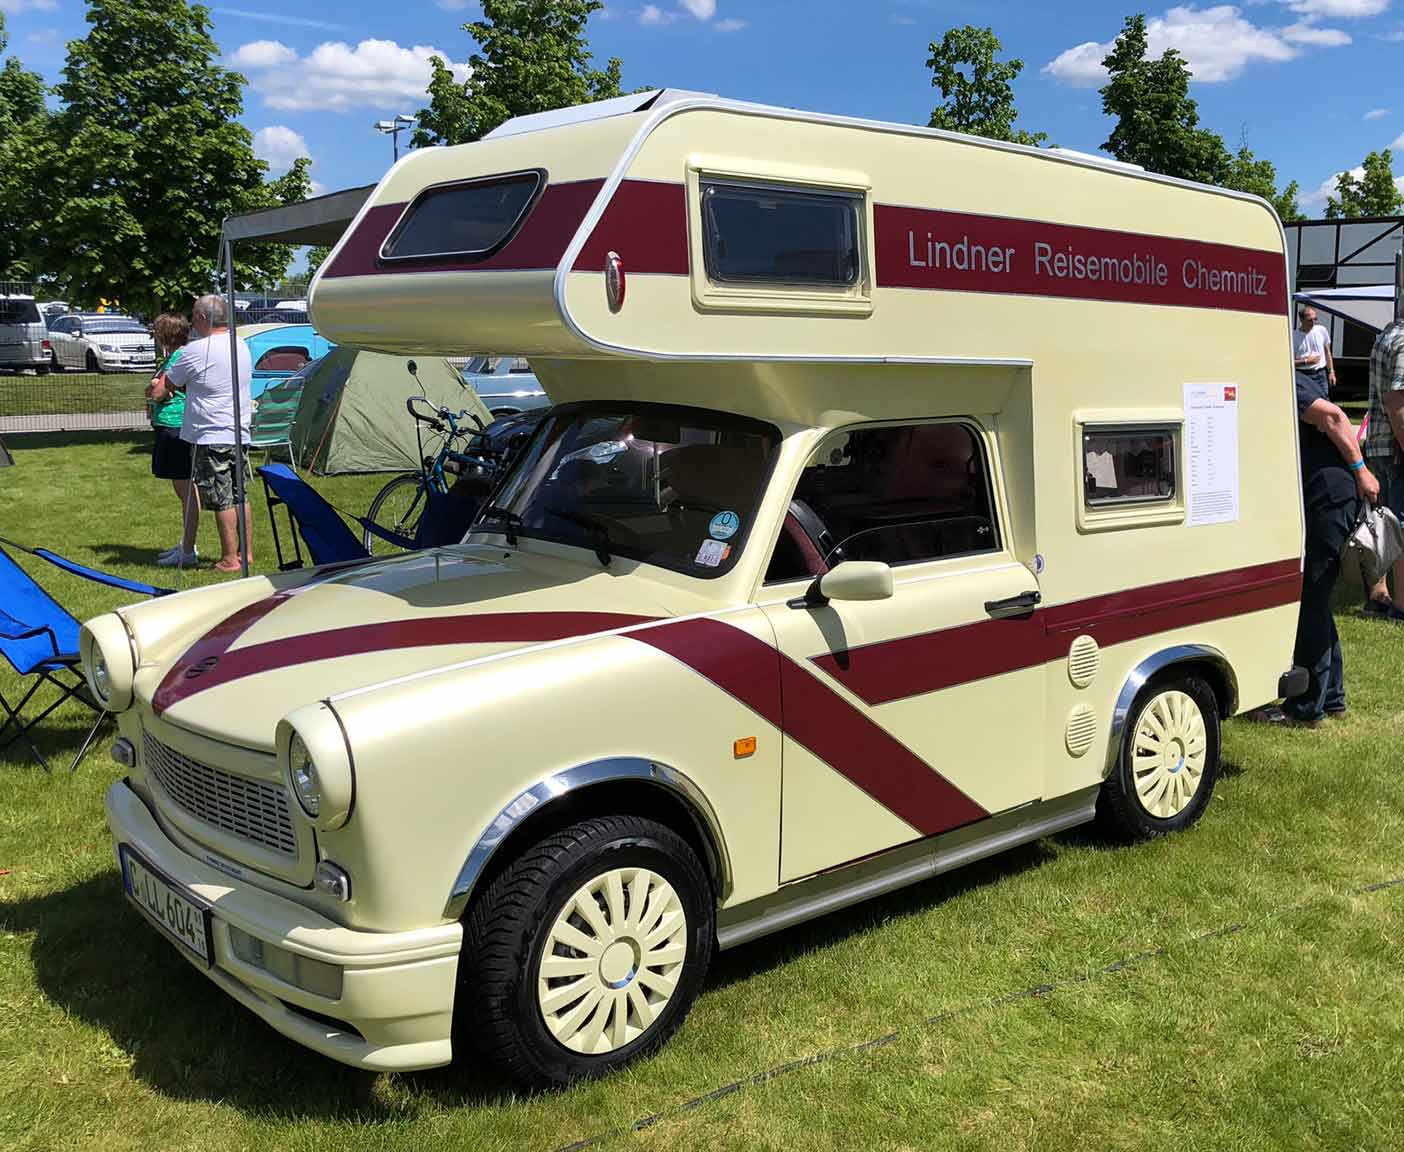 crazy-camping-oldtimer-hymer-museum-treffen-caravano-trabant-alkhoven